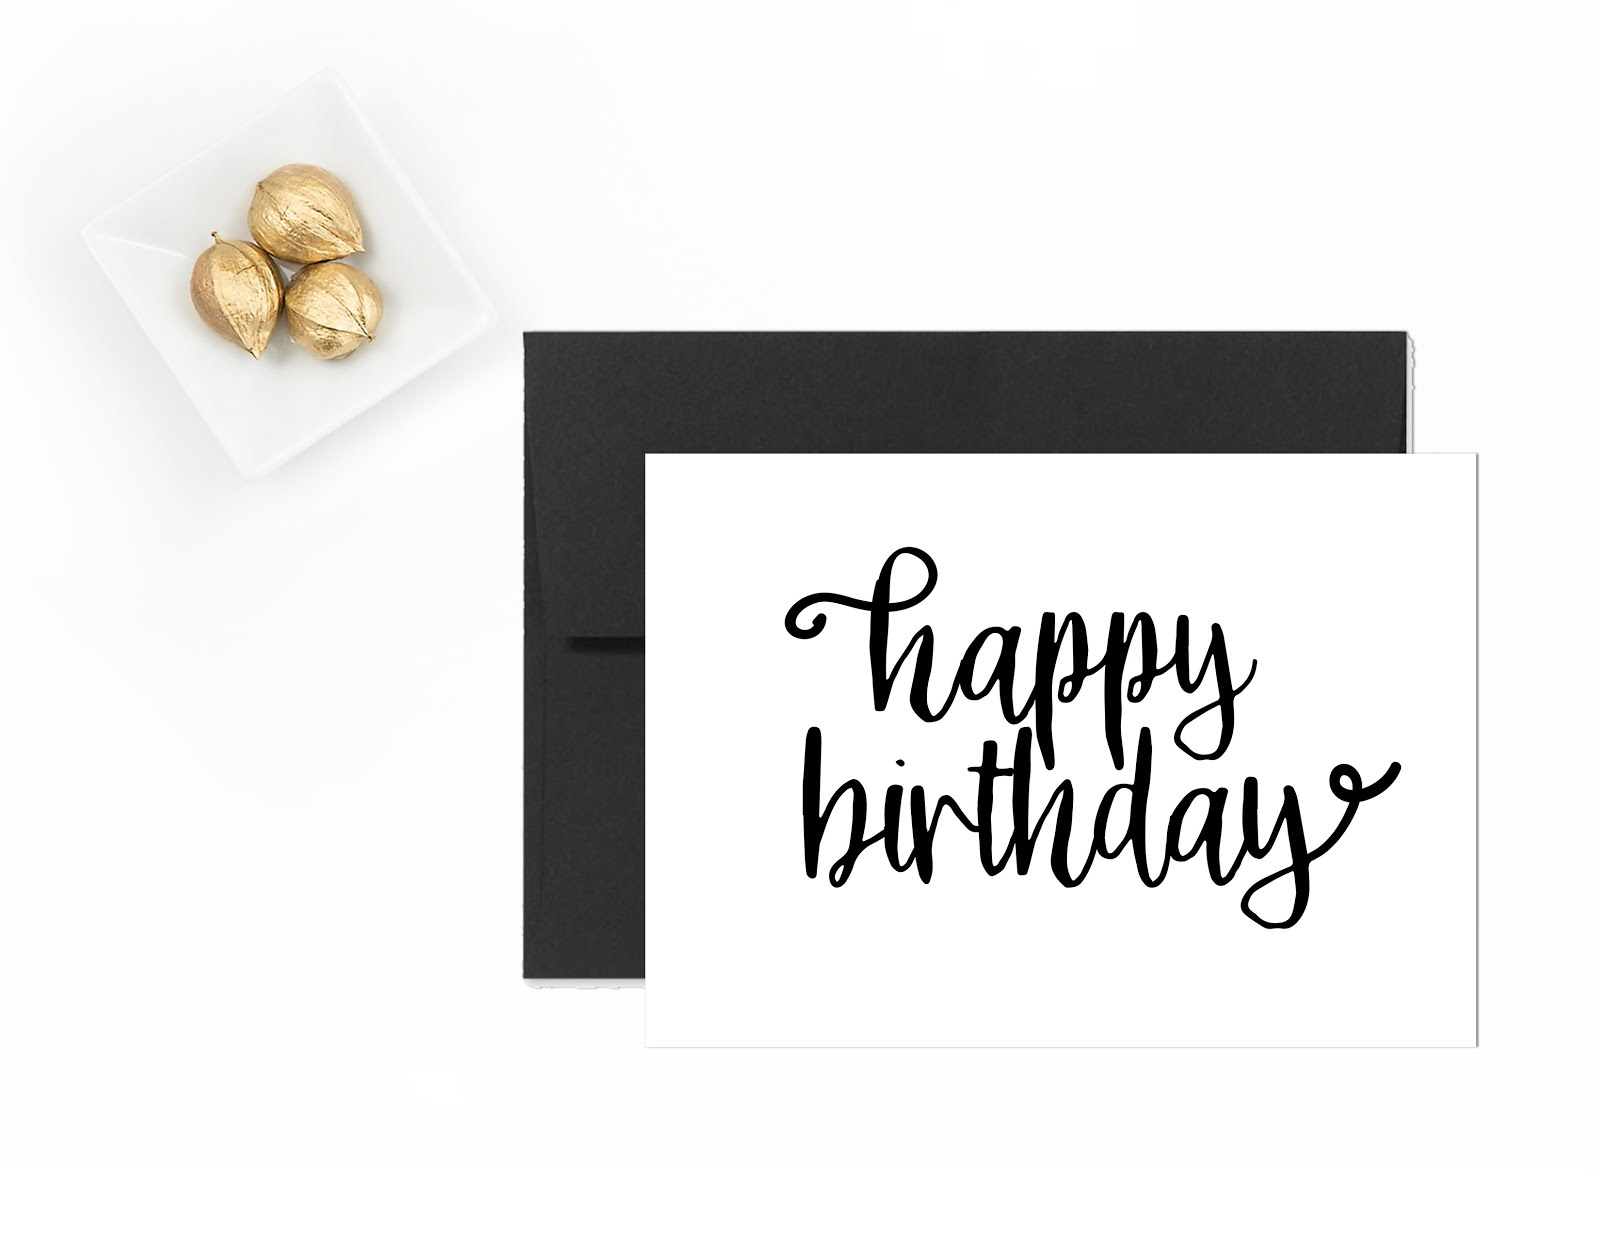 Printable Greeting Cards | Download Them Or Print - Free Printable Hallmark Birthday Cards